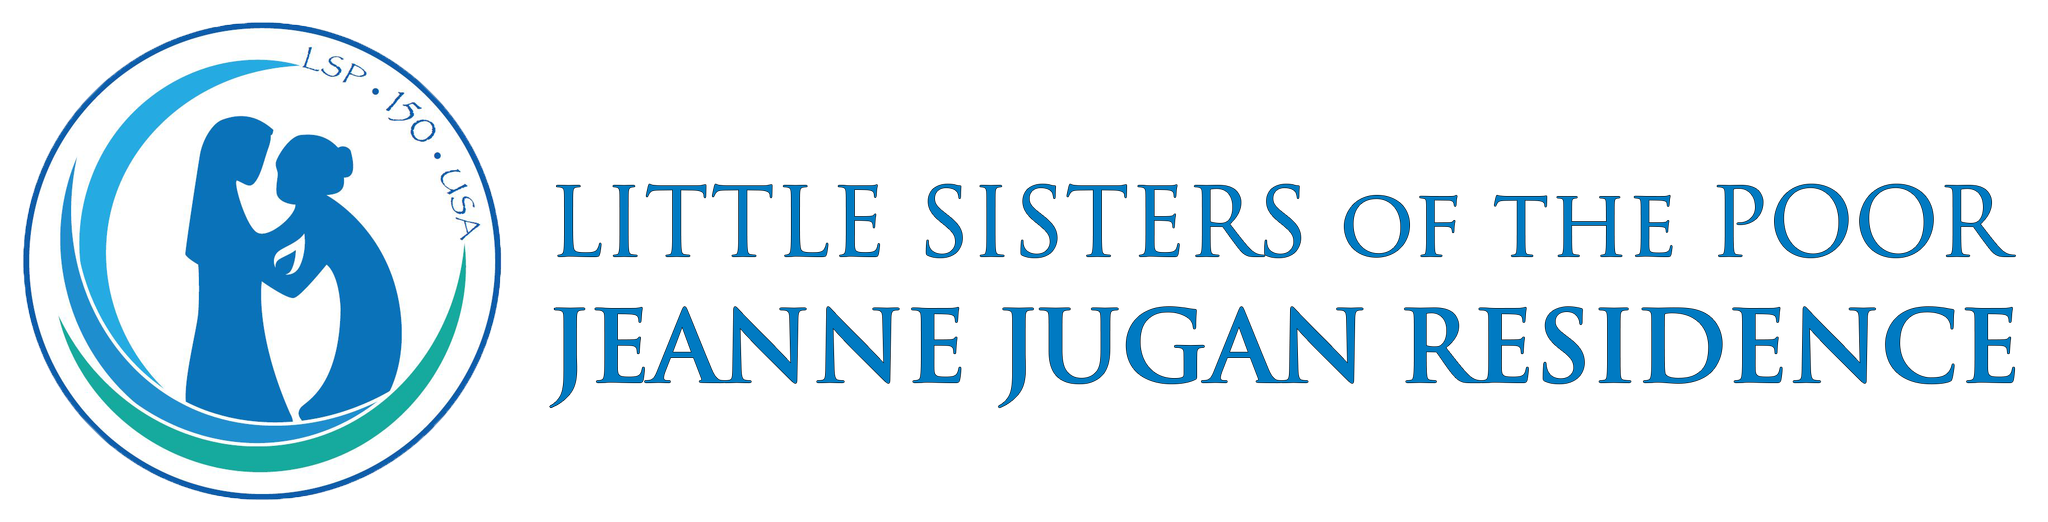 Little Sisters of the Poor Delaware